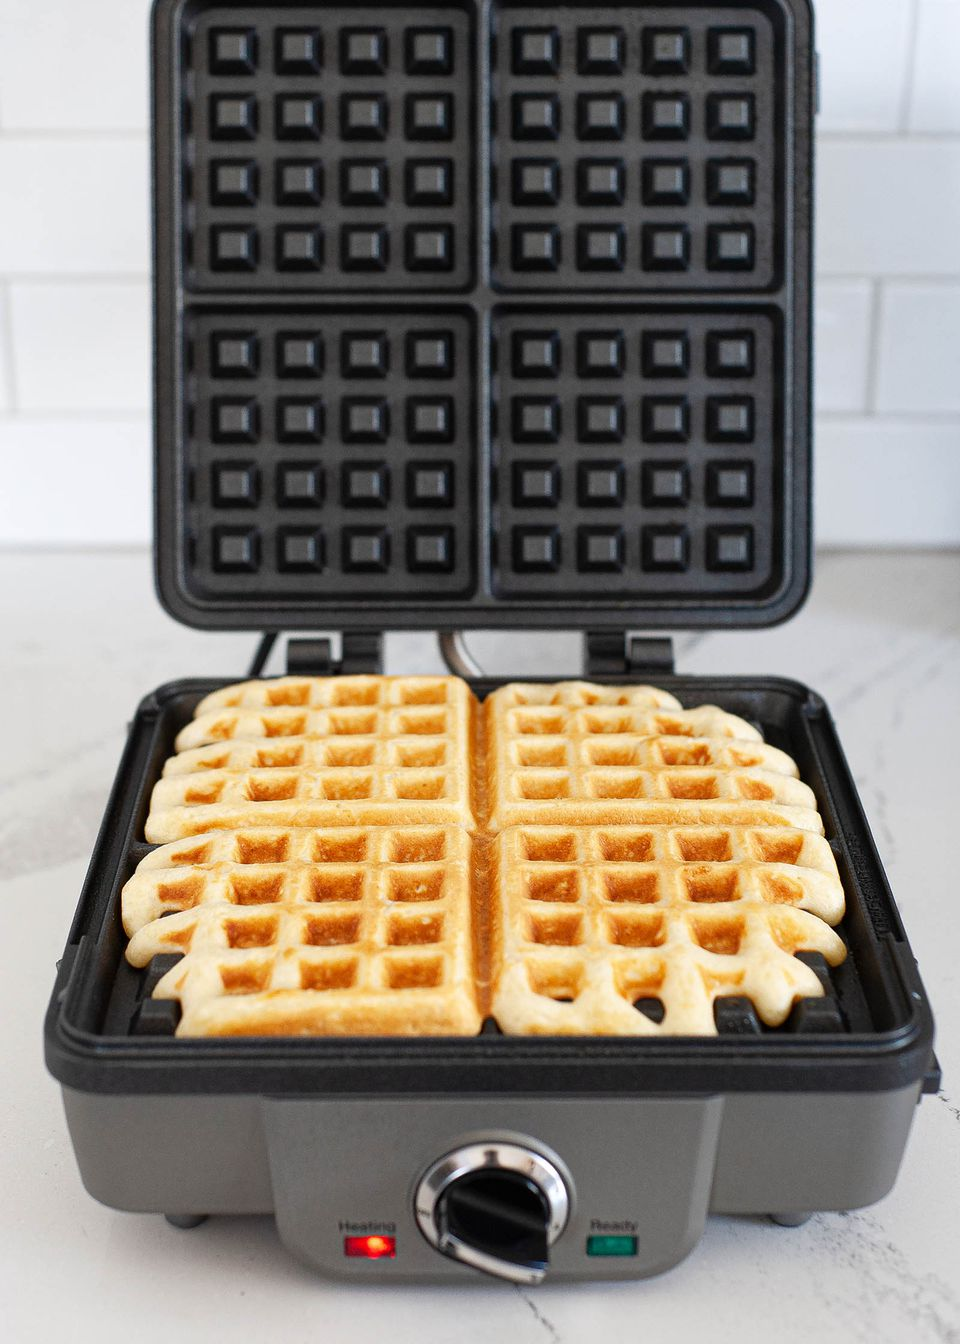 An open waffle maker with a cooked waffle inside.